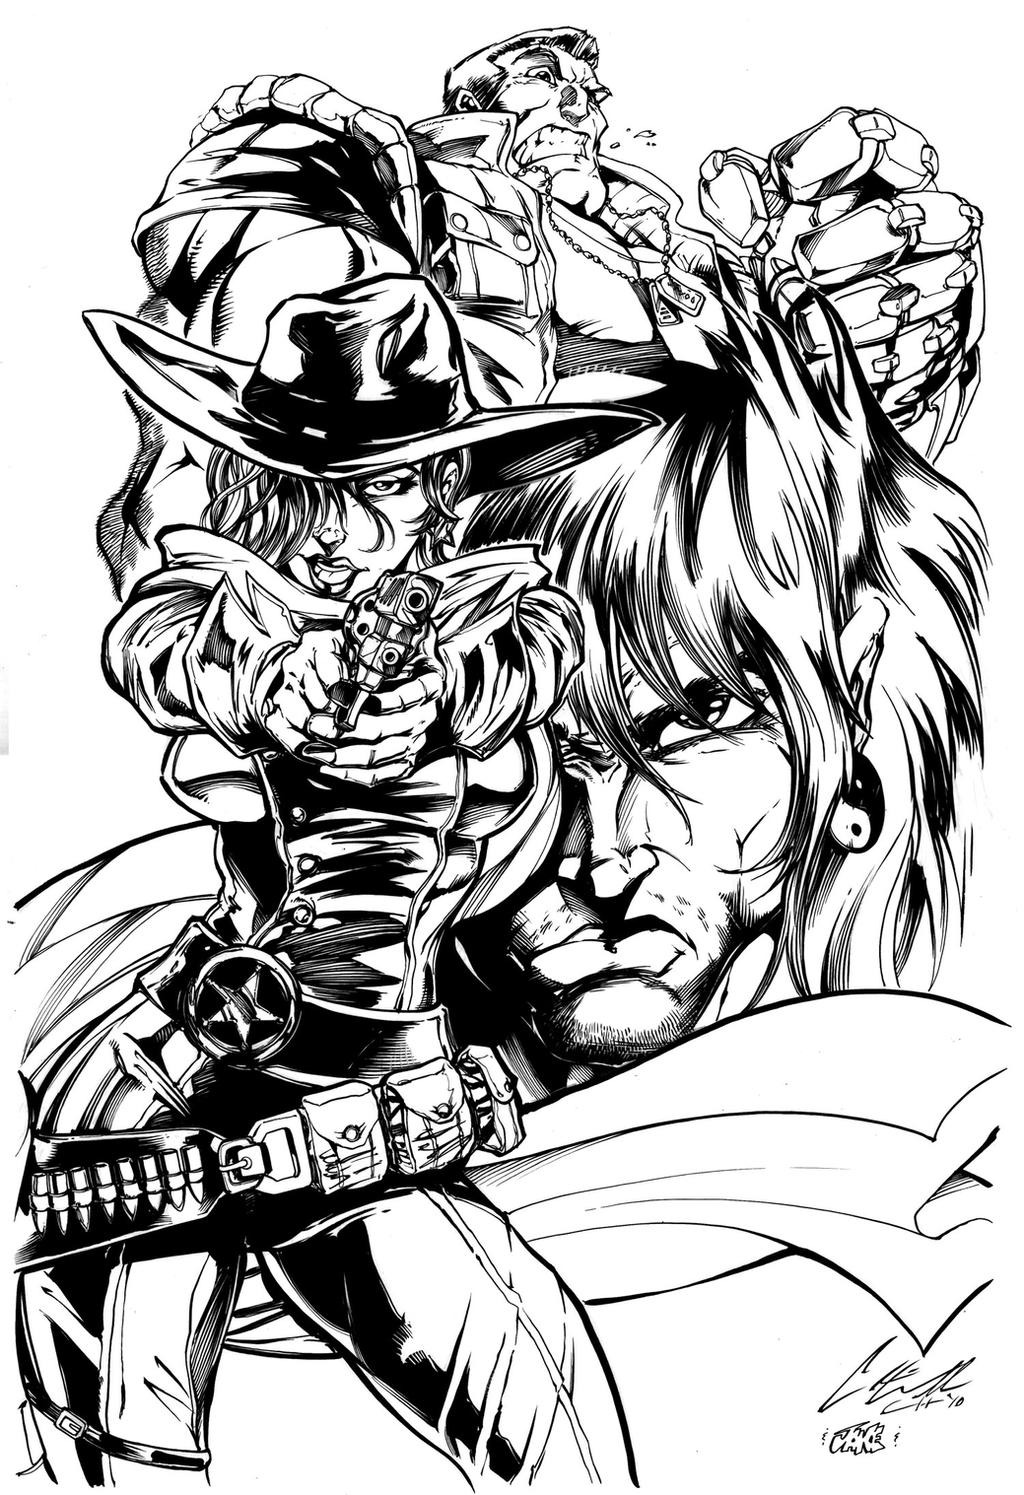 Contract submission 1 inks by Inker-guy